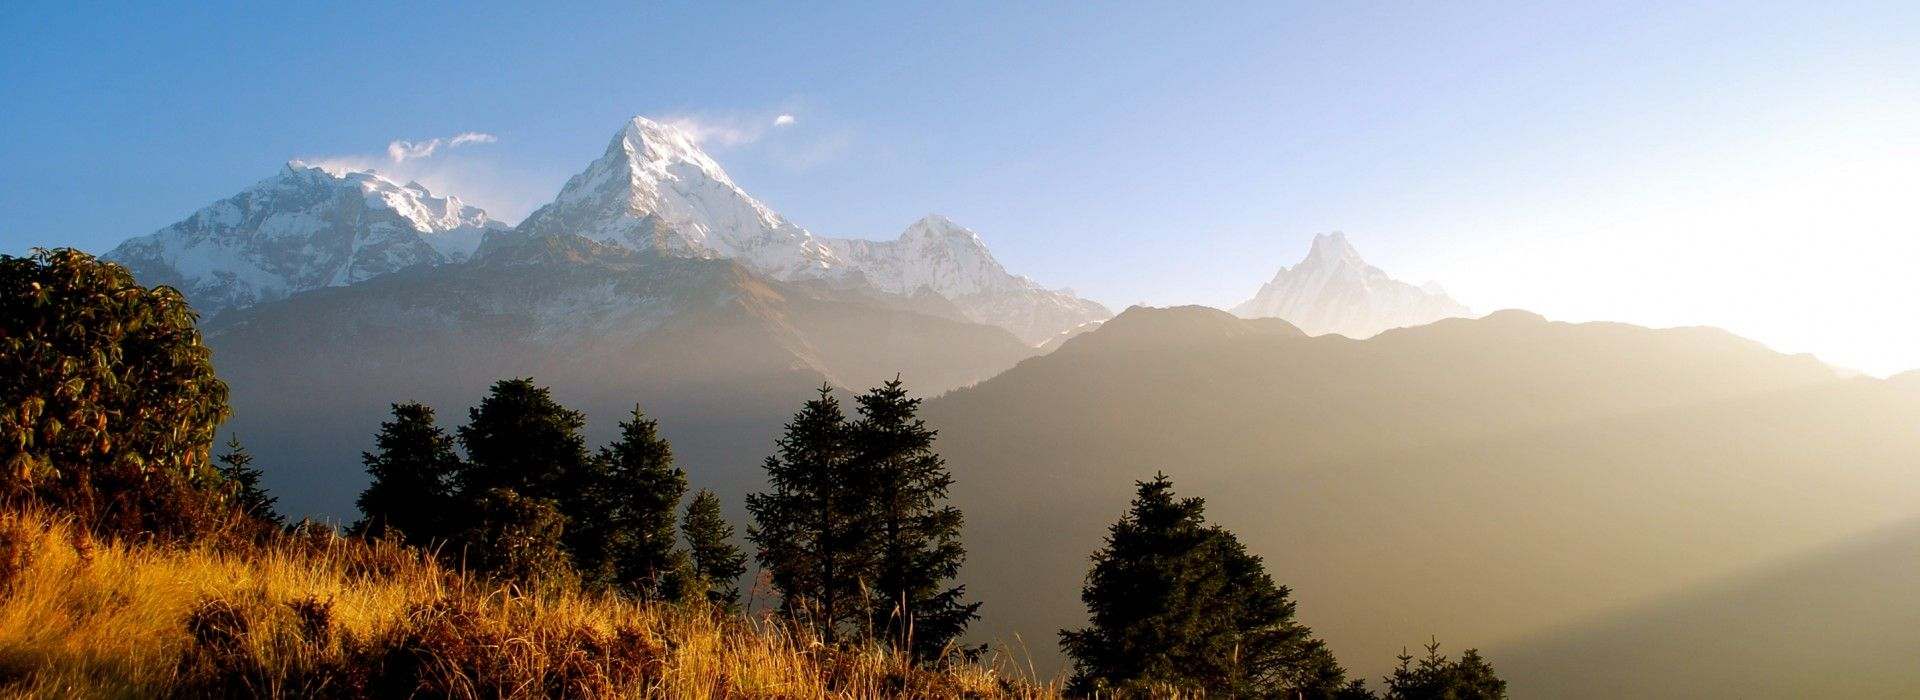 City sightseeing Tours in Pokhara